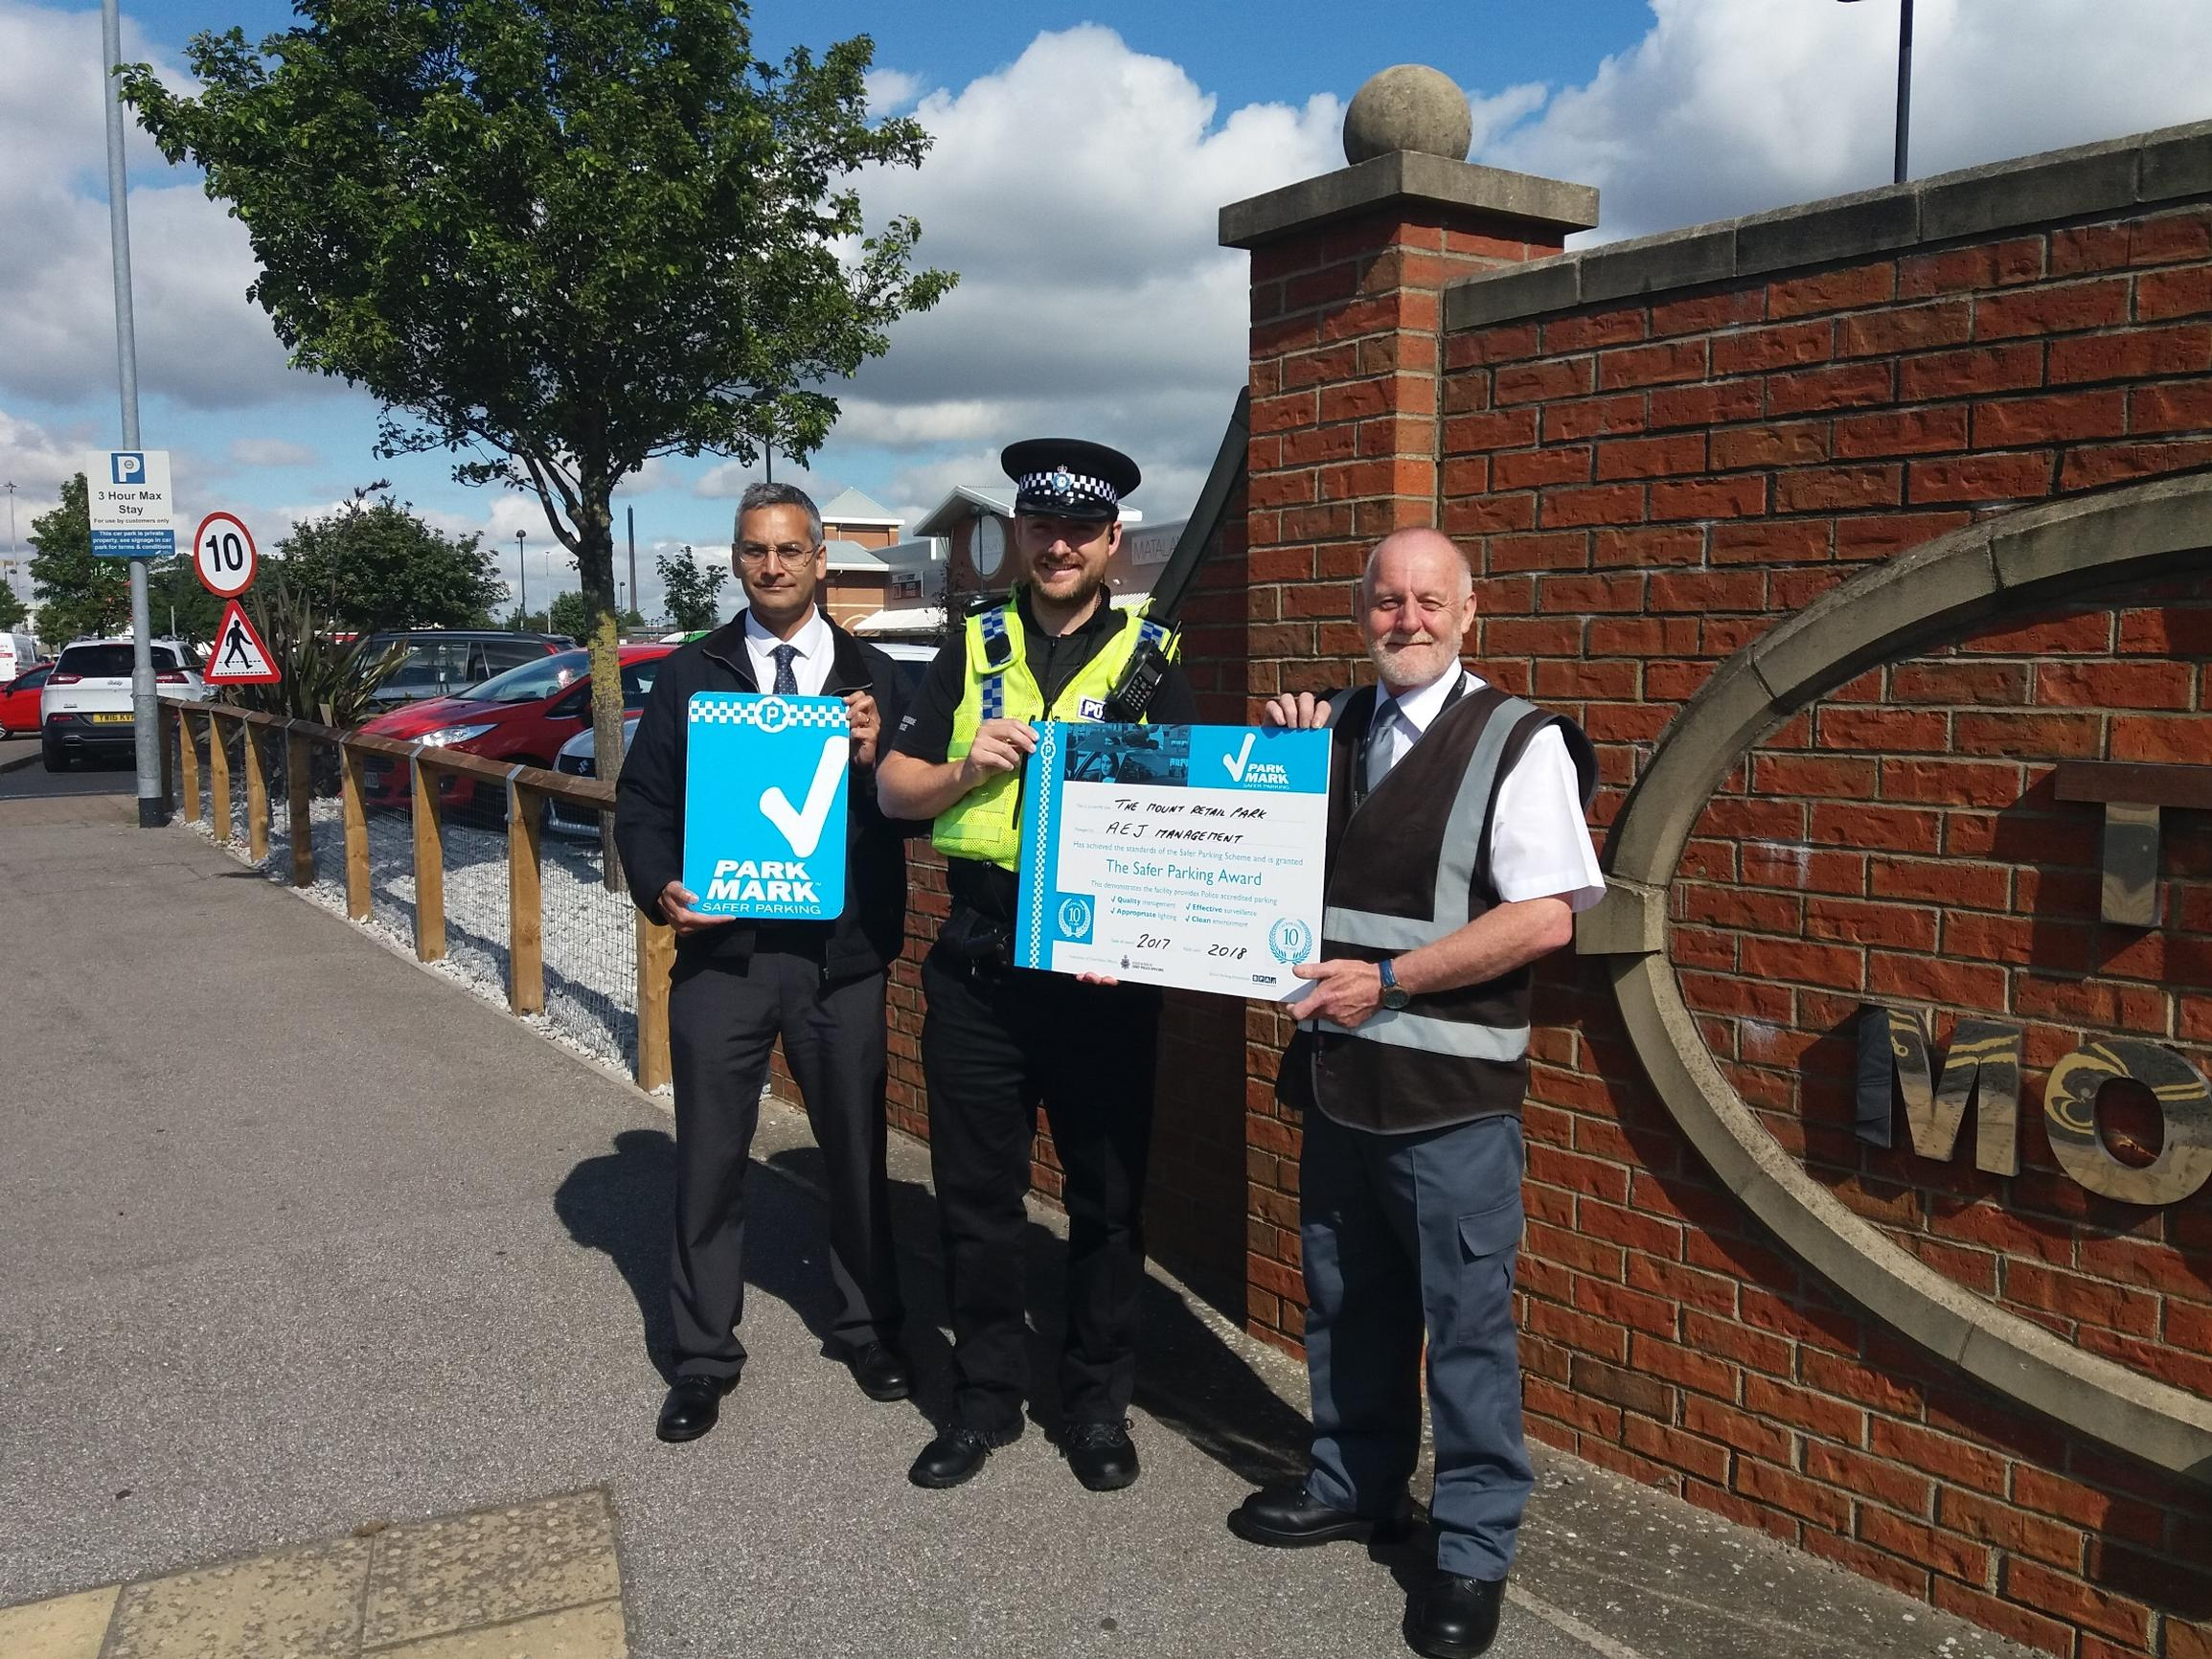 Marc Dias, Humberside Police Safer Parking assessor, Inspector Mark Peasgood from Humberside Local Policing Unit 